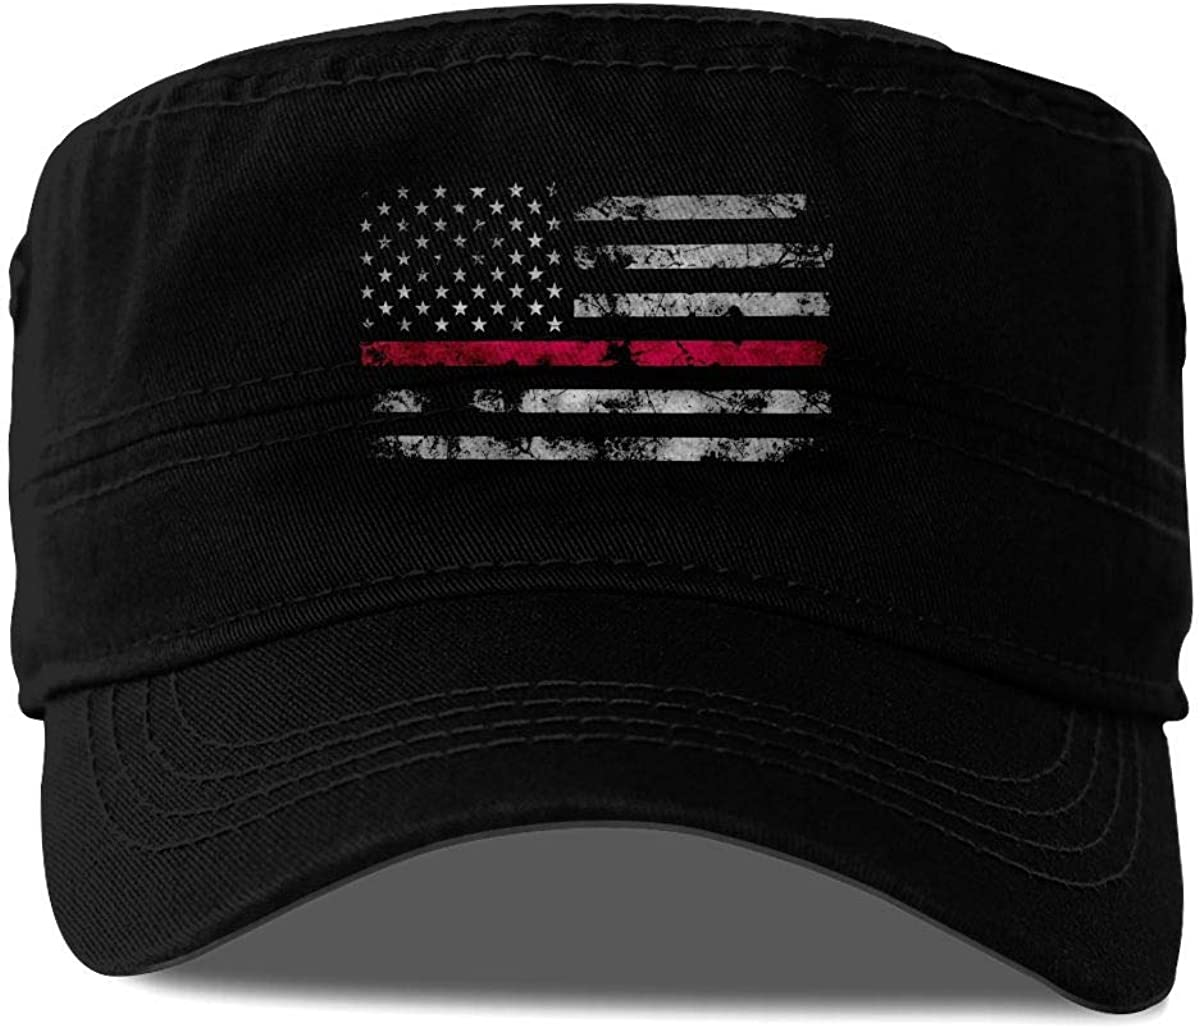 Firefighter Thin Red Line American Flag Fashion Adult Caps Unisex Snapback Military Army Cadet Cap Flat Top Sun Hats